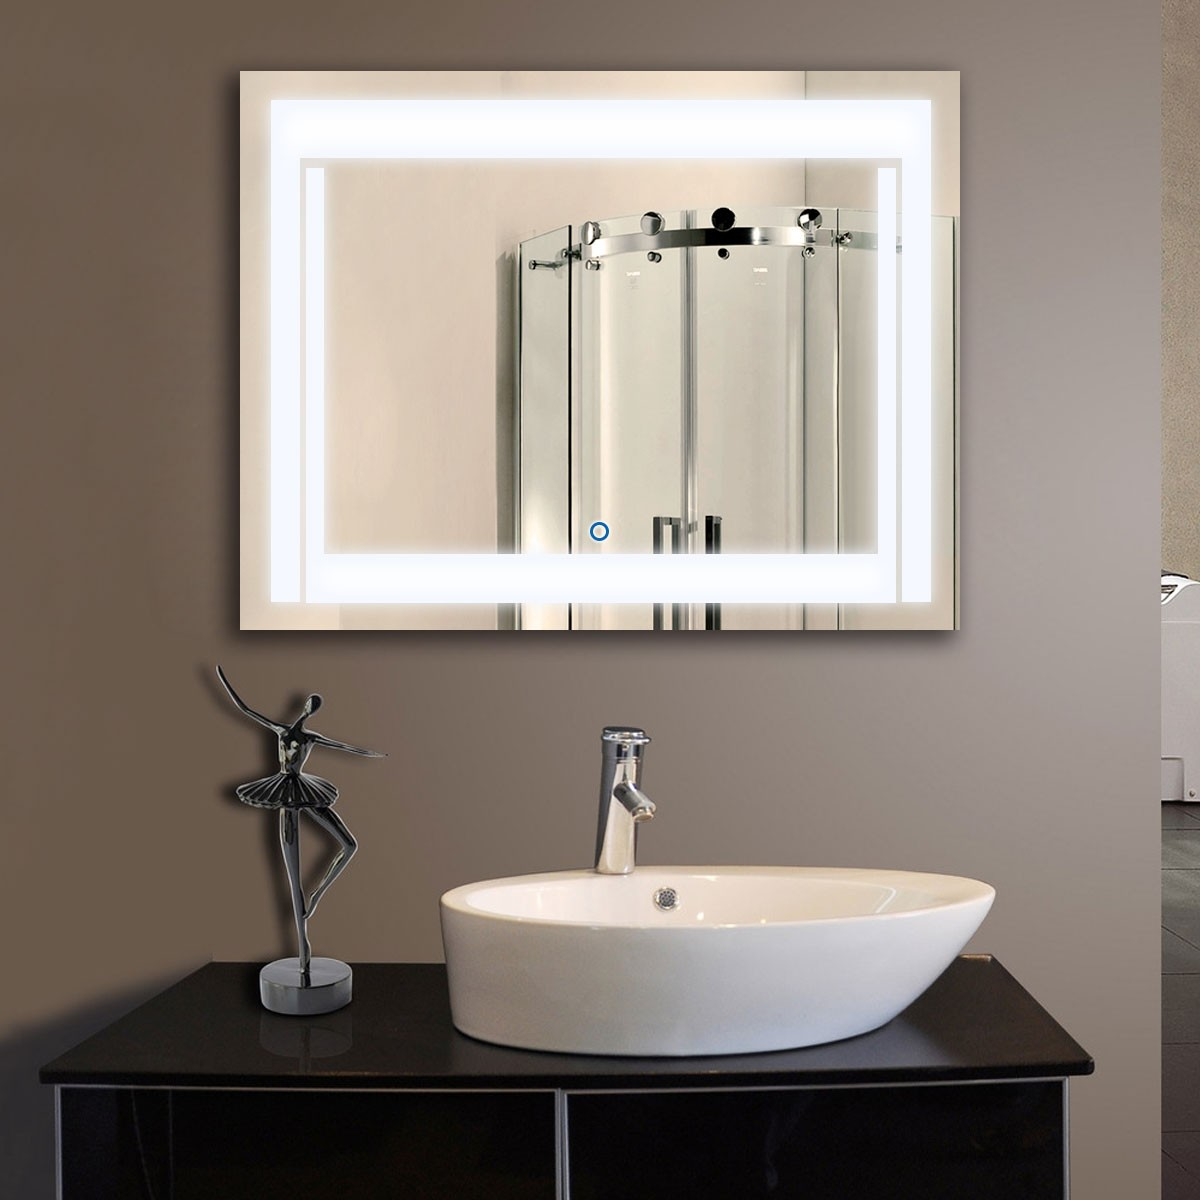 36 x 28 In Horizontal LED Backlit Bathroom Mirror, Touch Button (DK-OD-CK150-L)